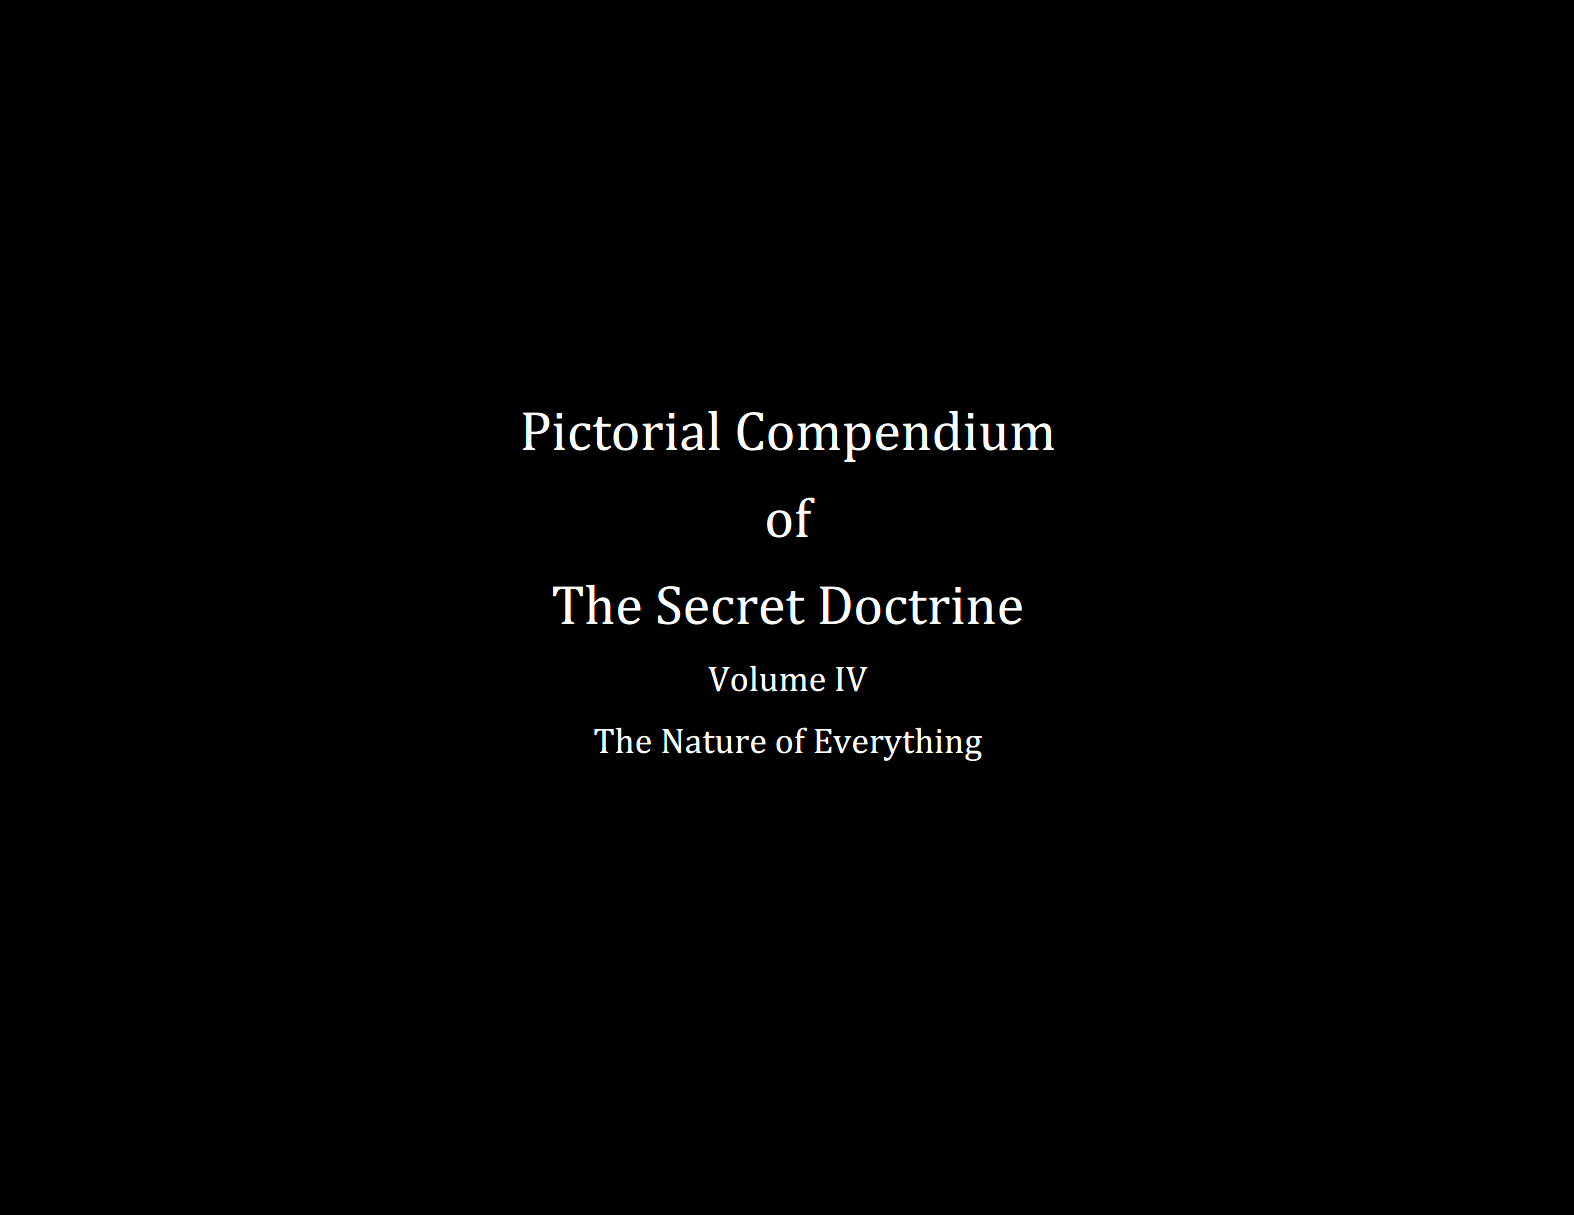 Pictorial Compendium of The Secret Doctrine Volume IV The Nature of Everything